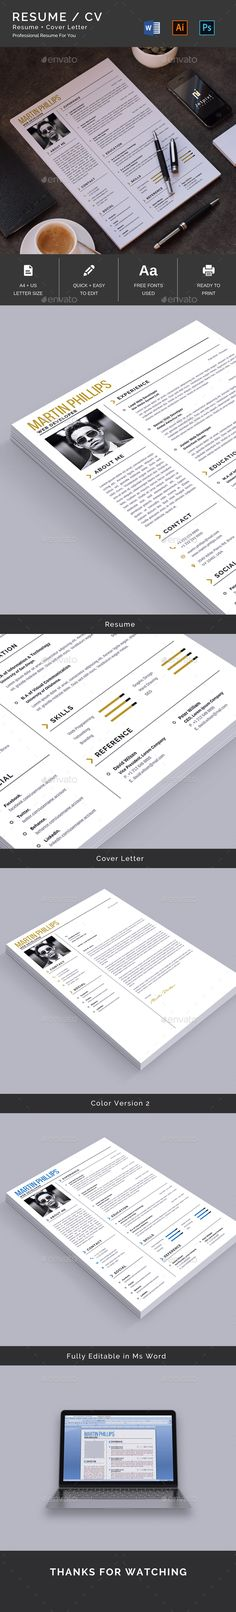 Resume Template PSD, AI, DOCX & DOC - A4 & US Letter Size